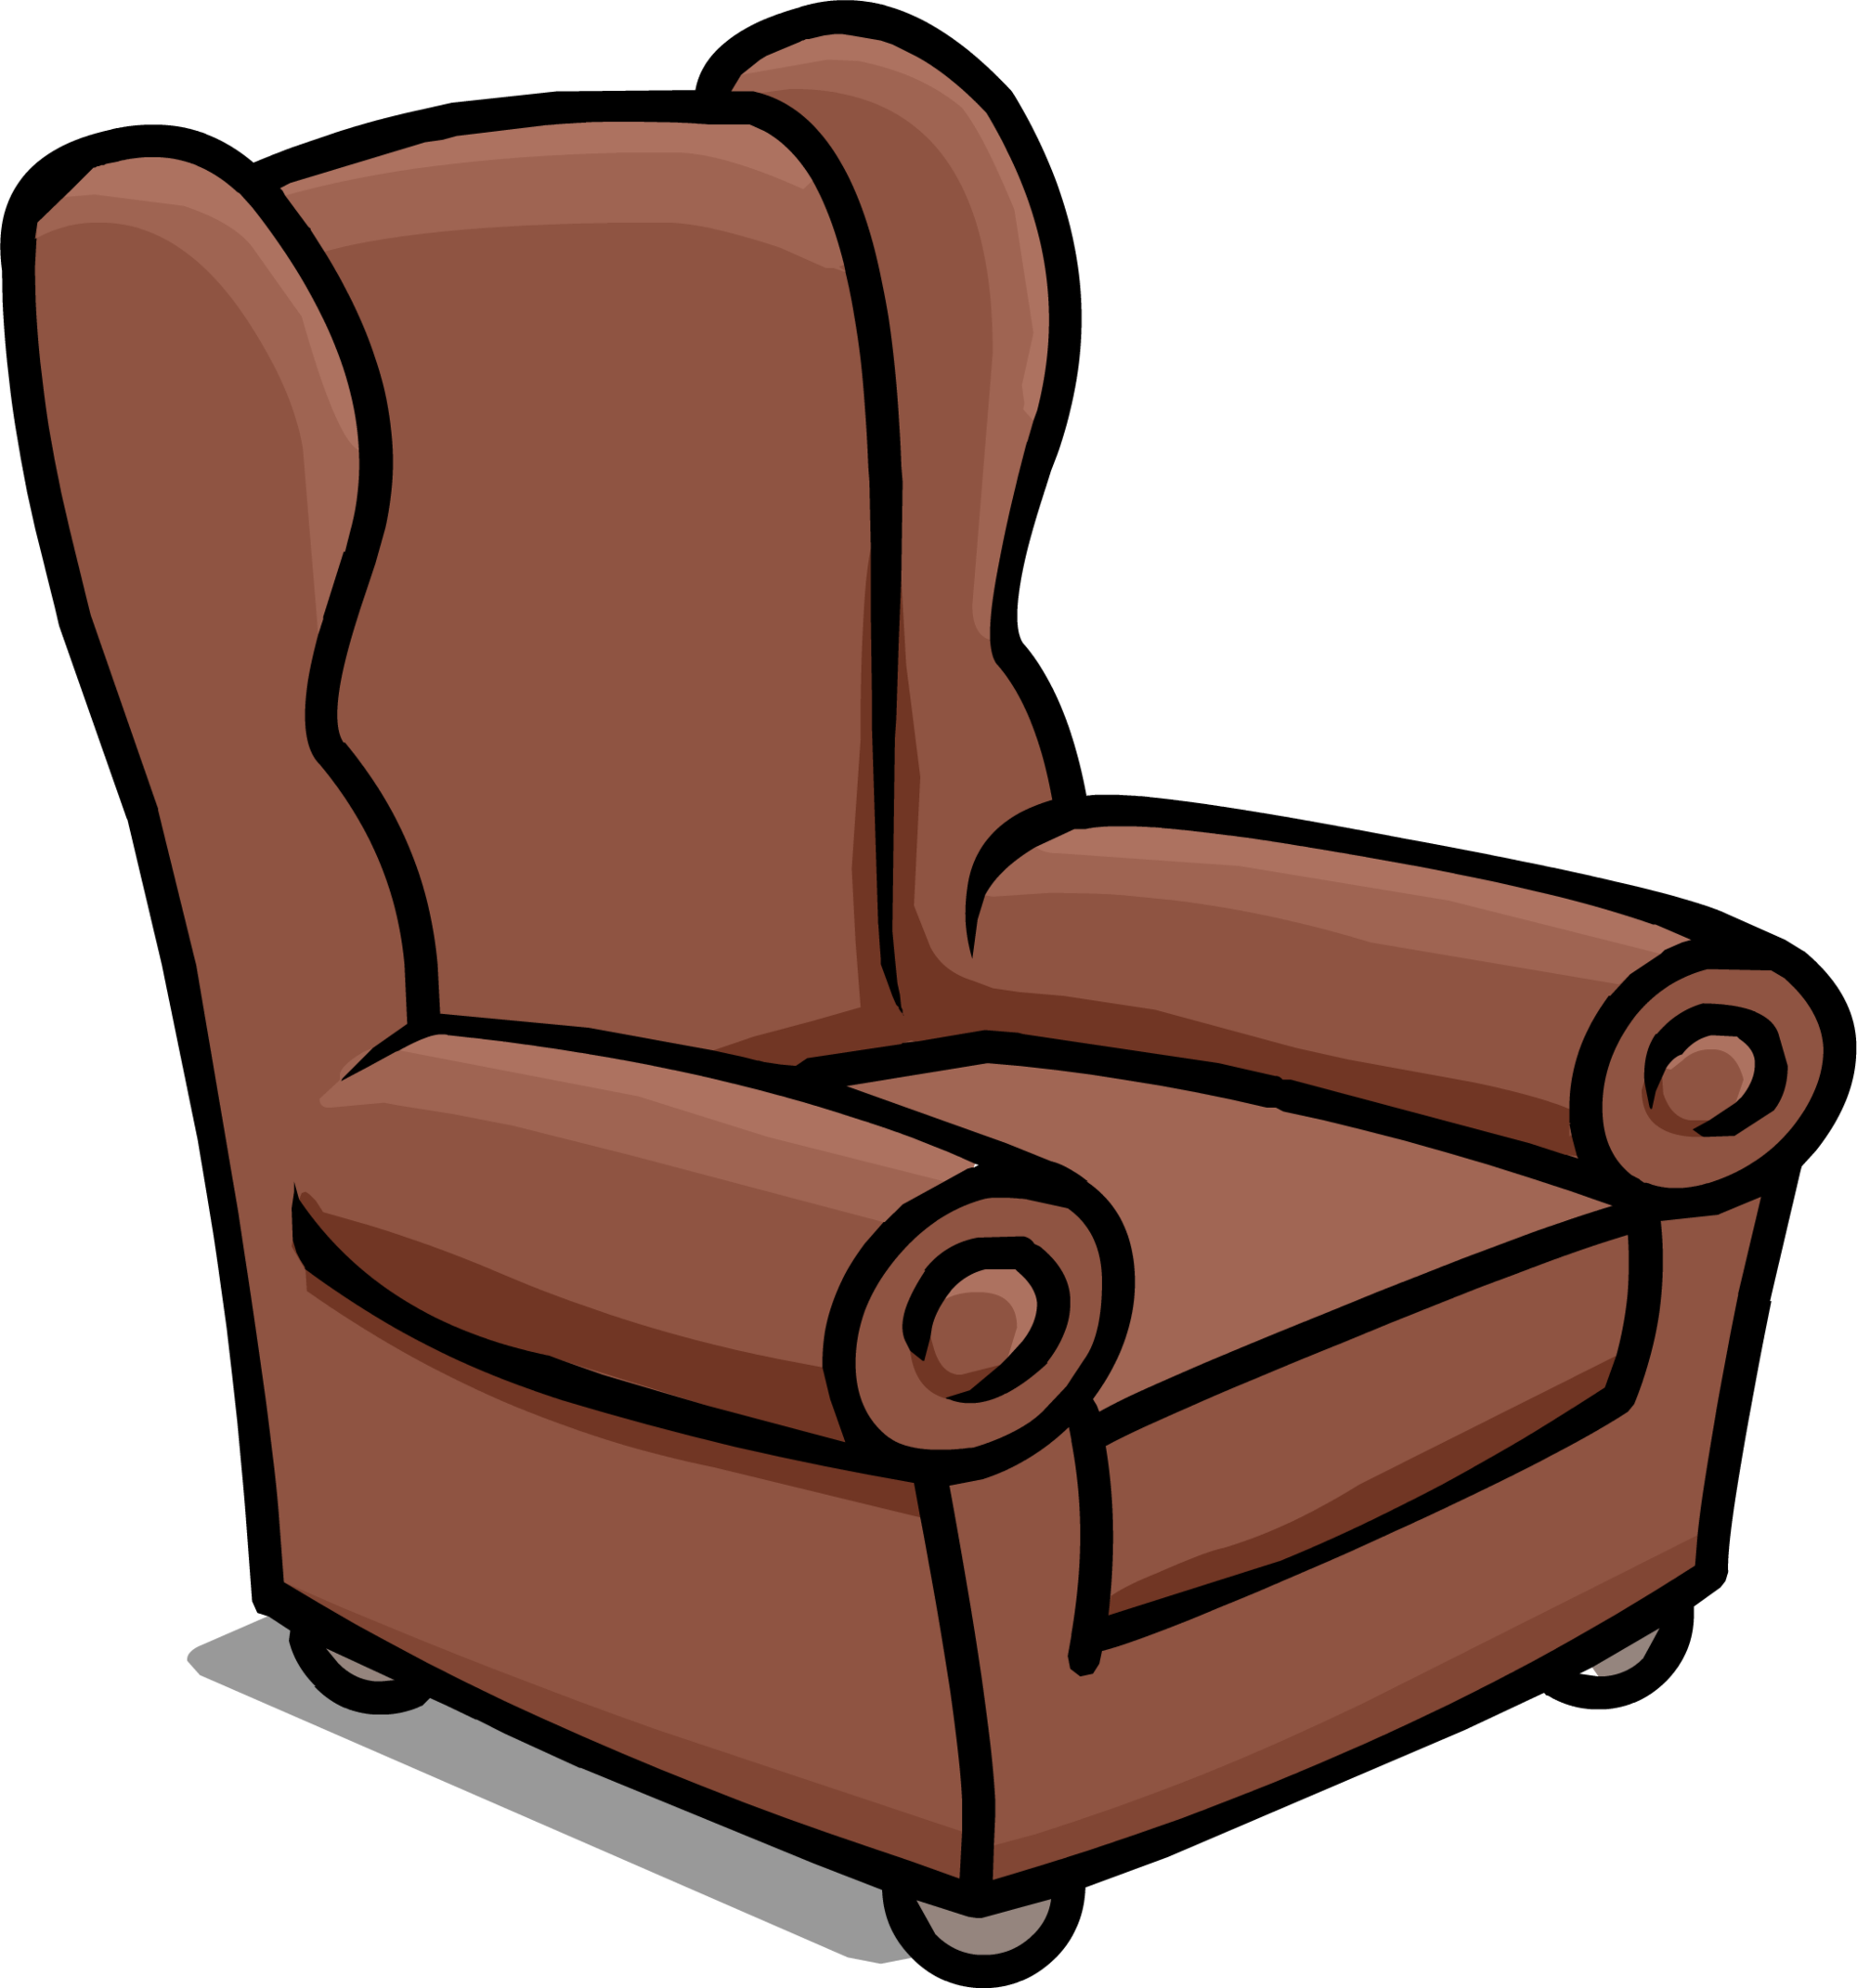 Clipart chair recliner. Image book room arm